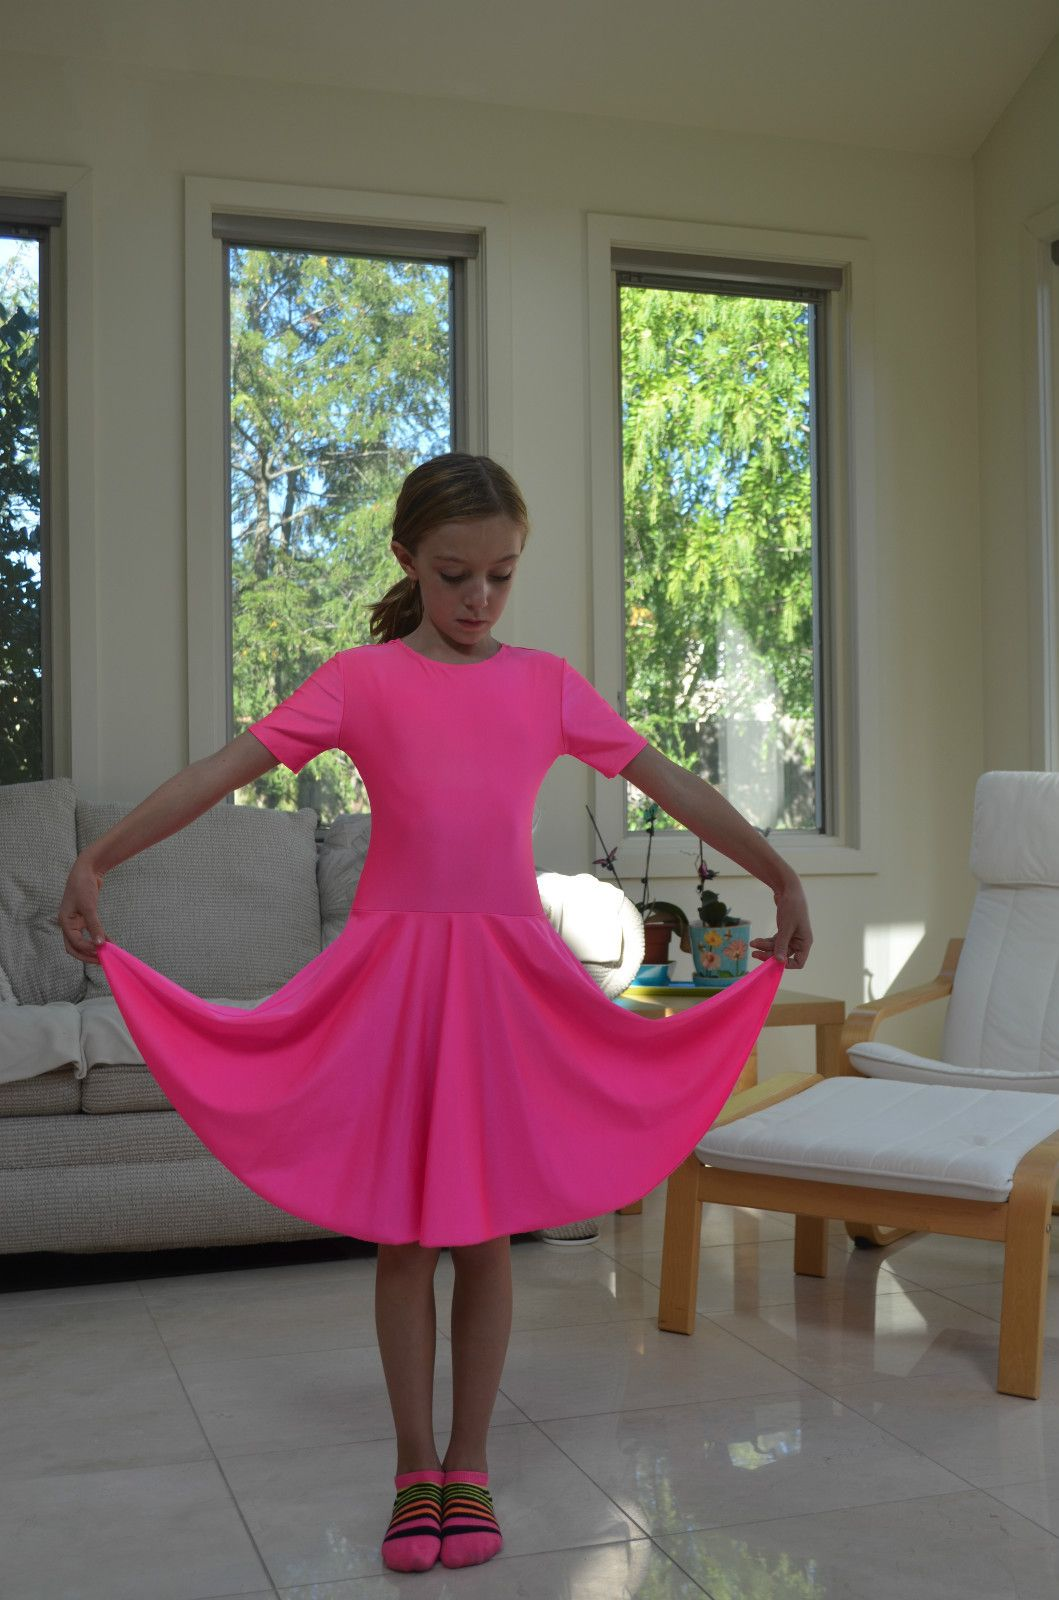 pretty outfits for 11 year olds - Google Search | Adrina ...